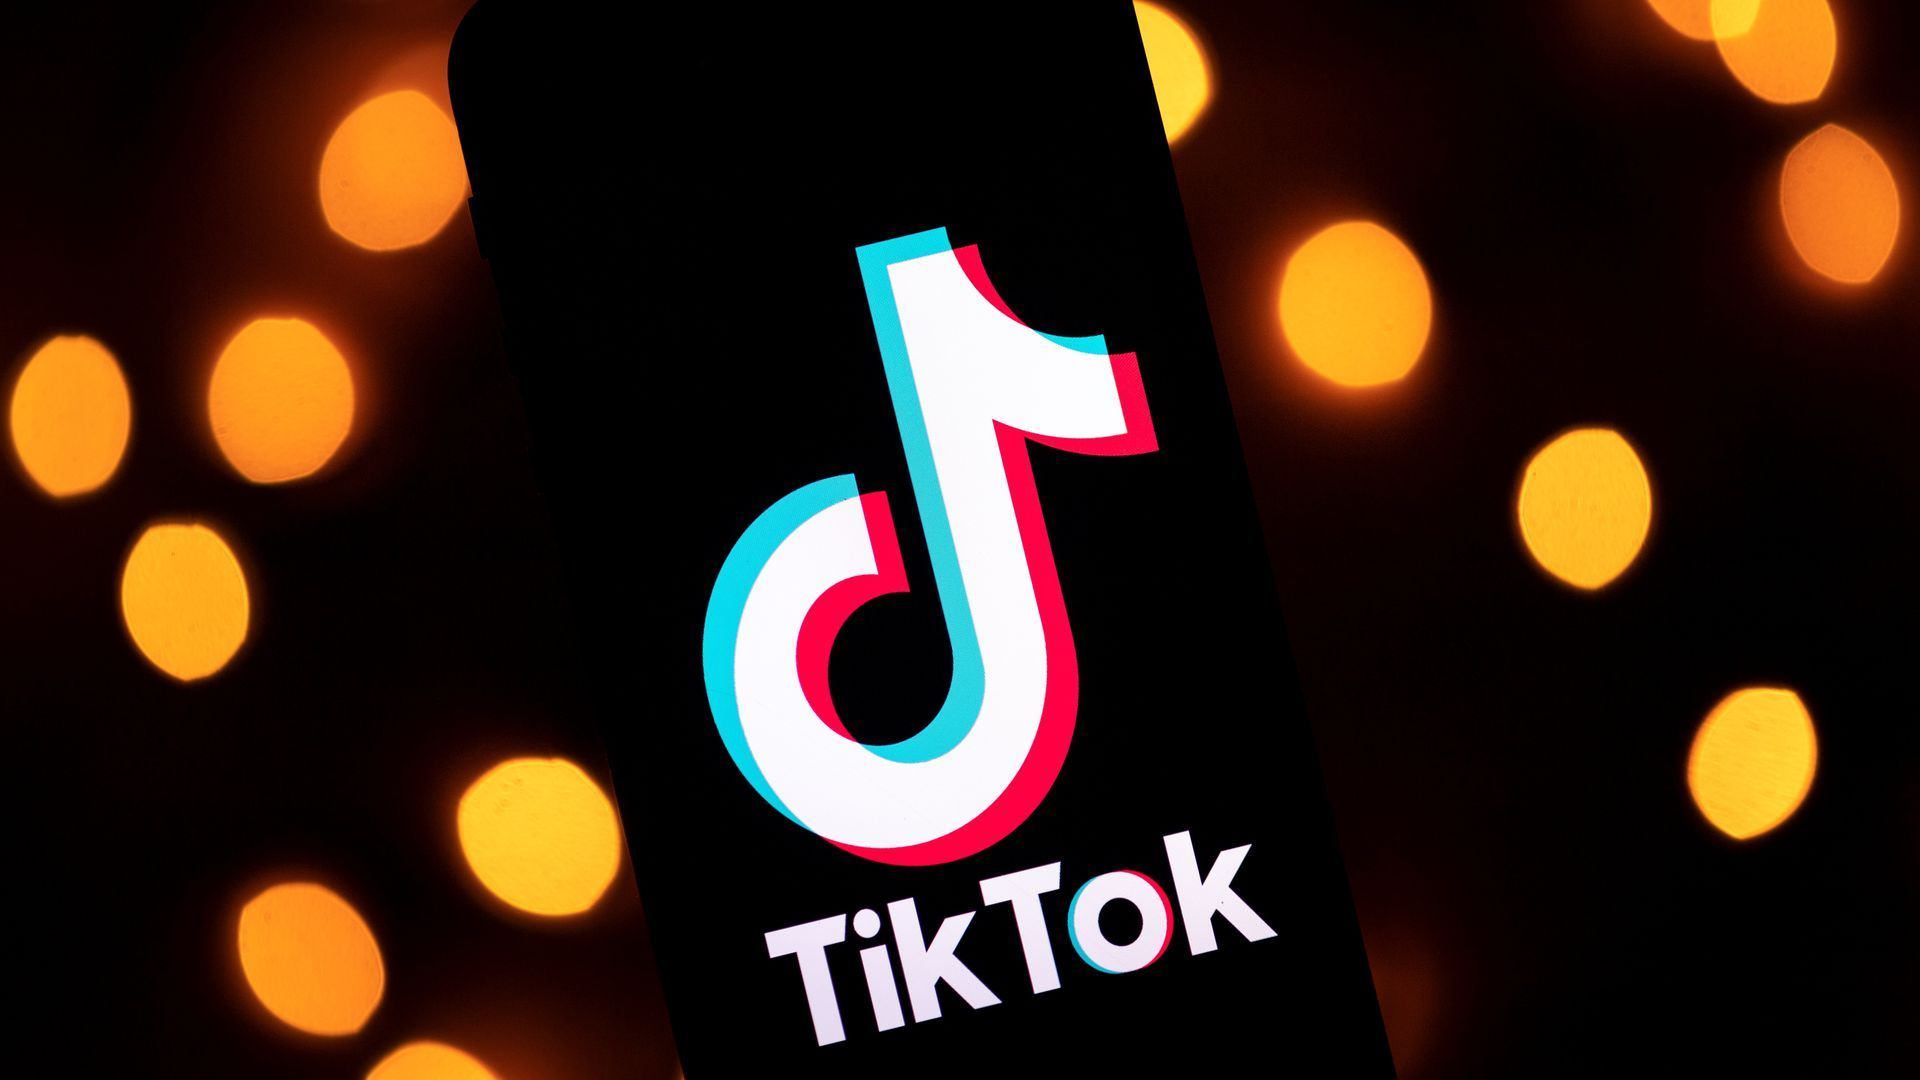 tiktok version of pictures